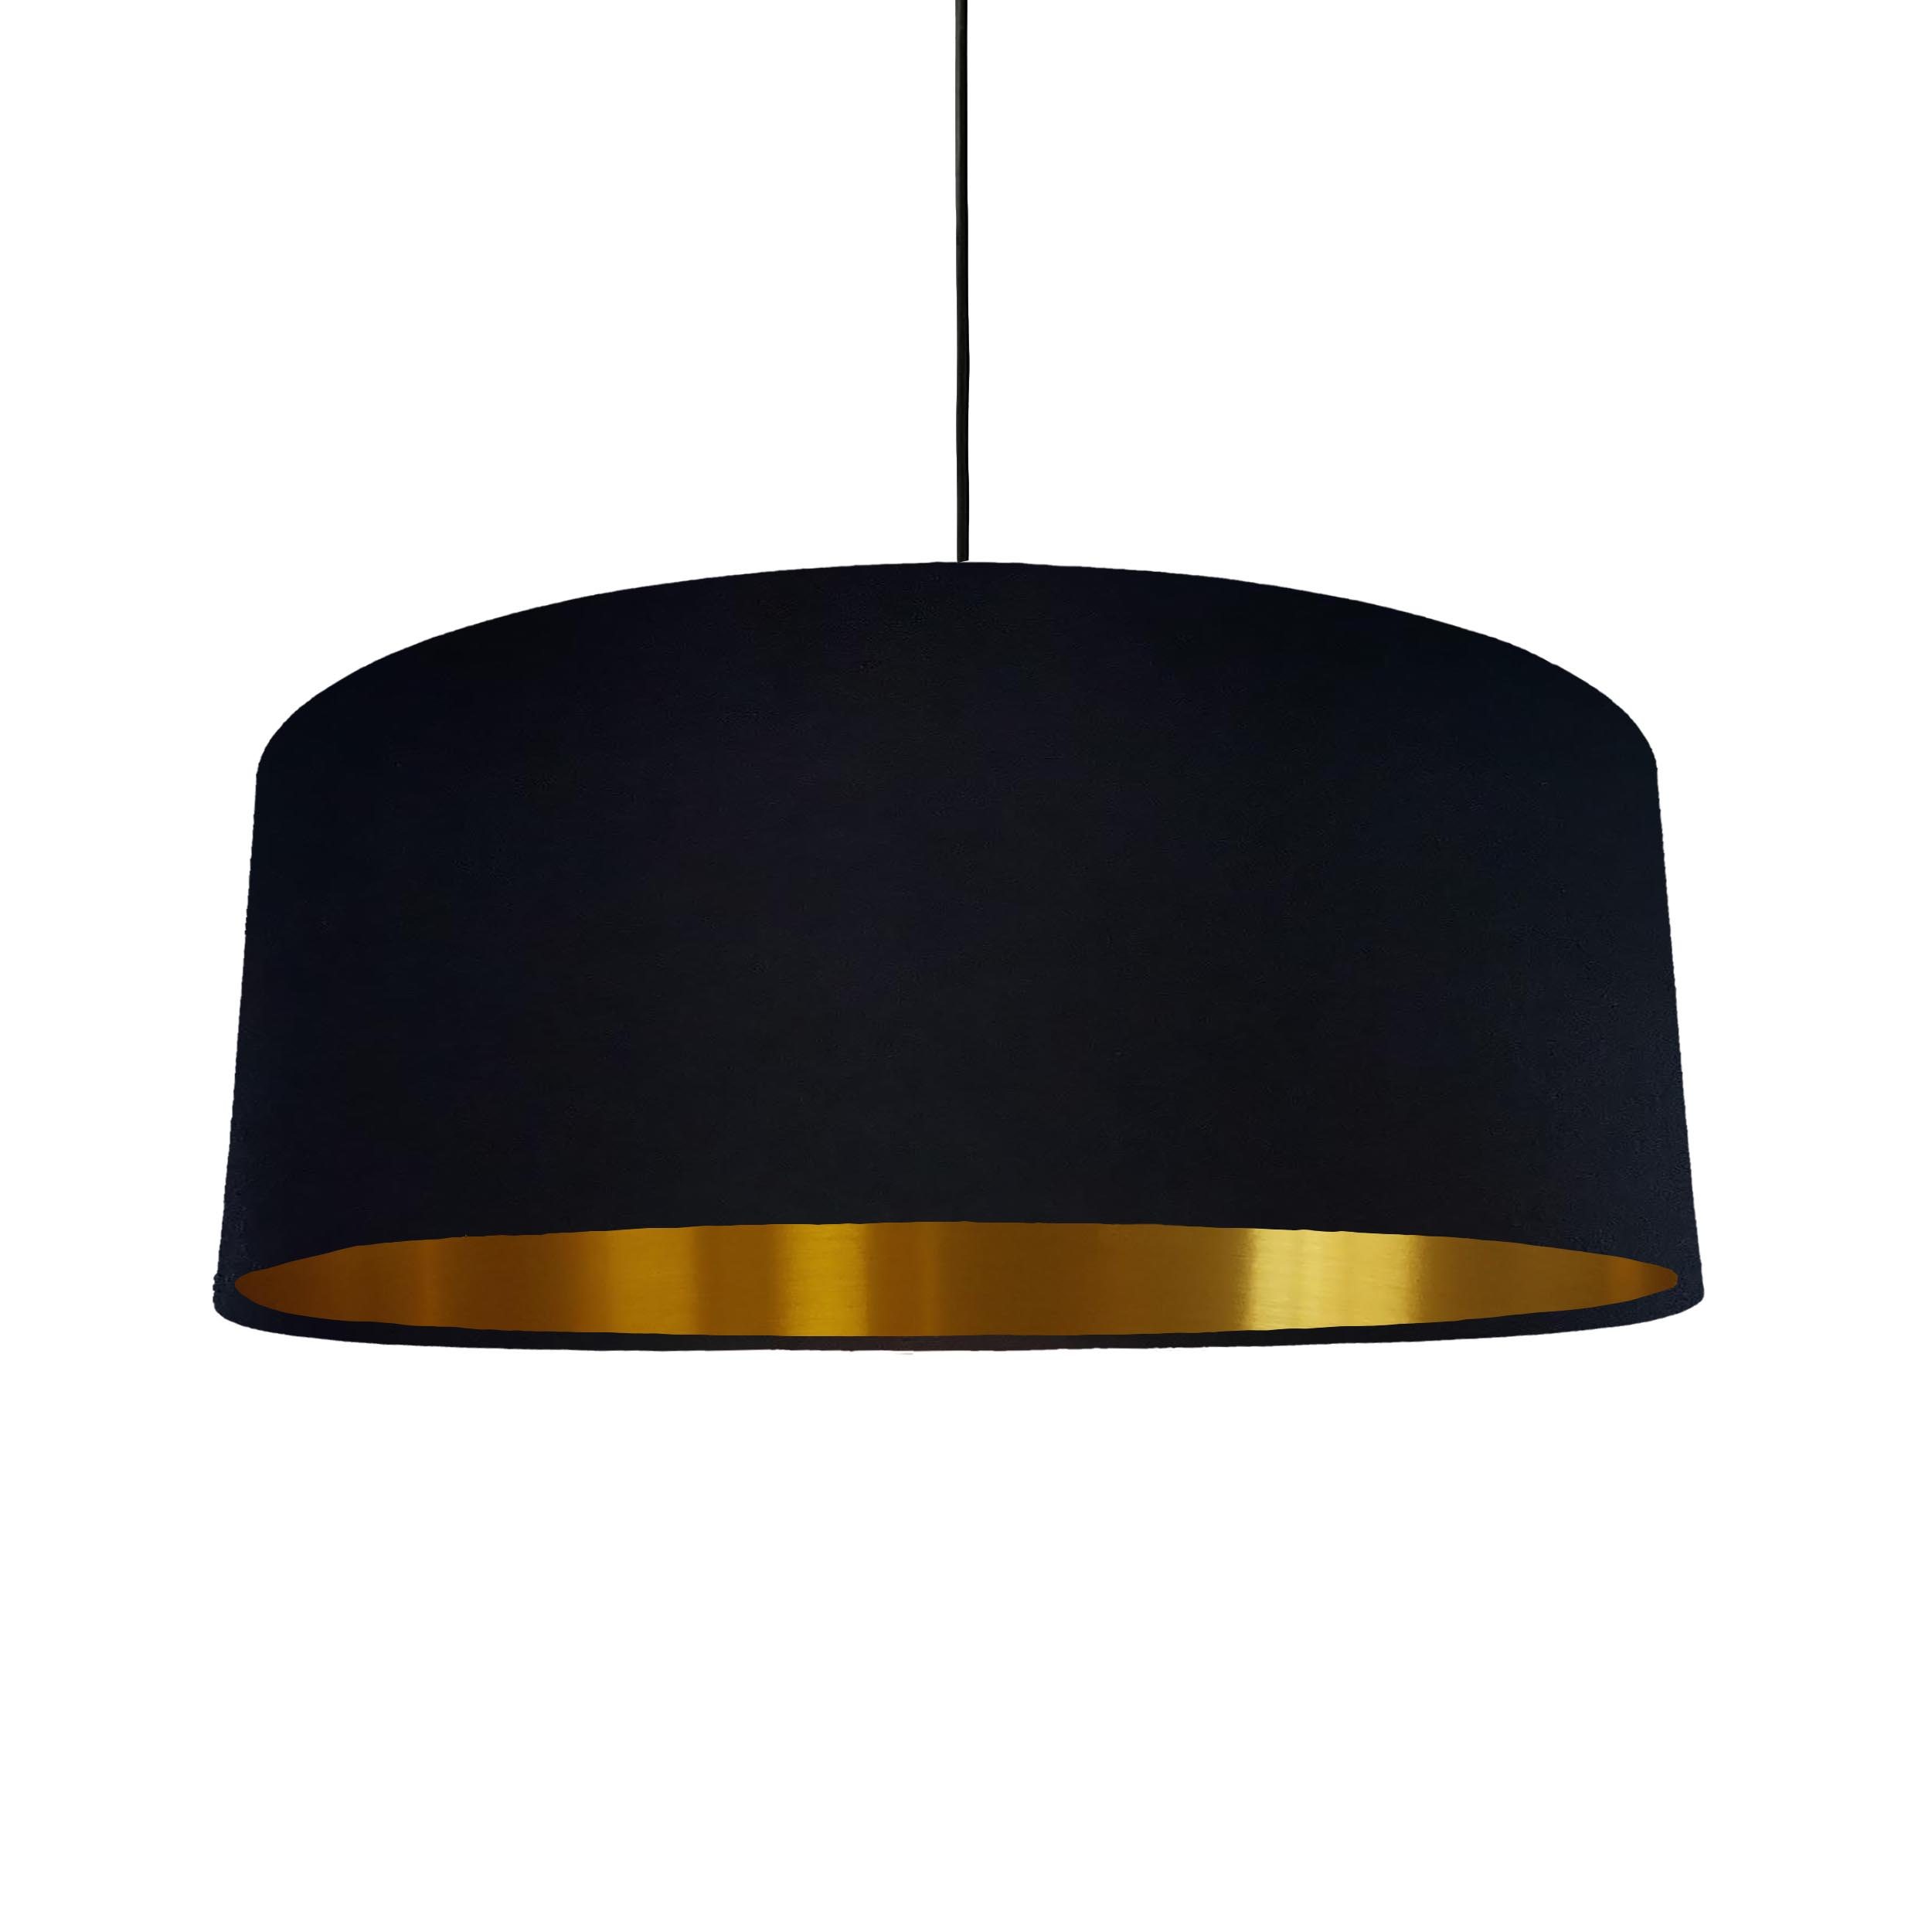 Extra Large Lampshade in Black Cotton and a Brushed Gold Lining